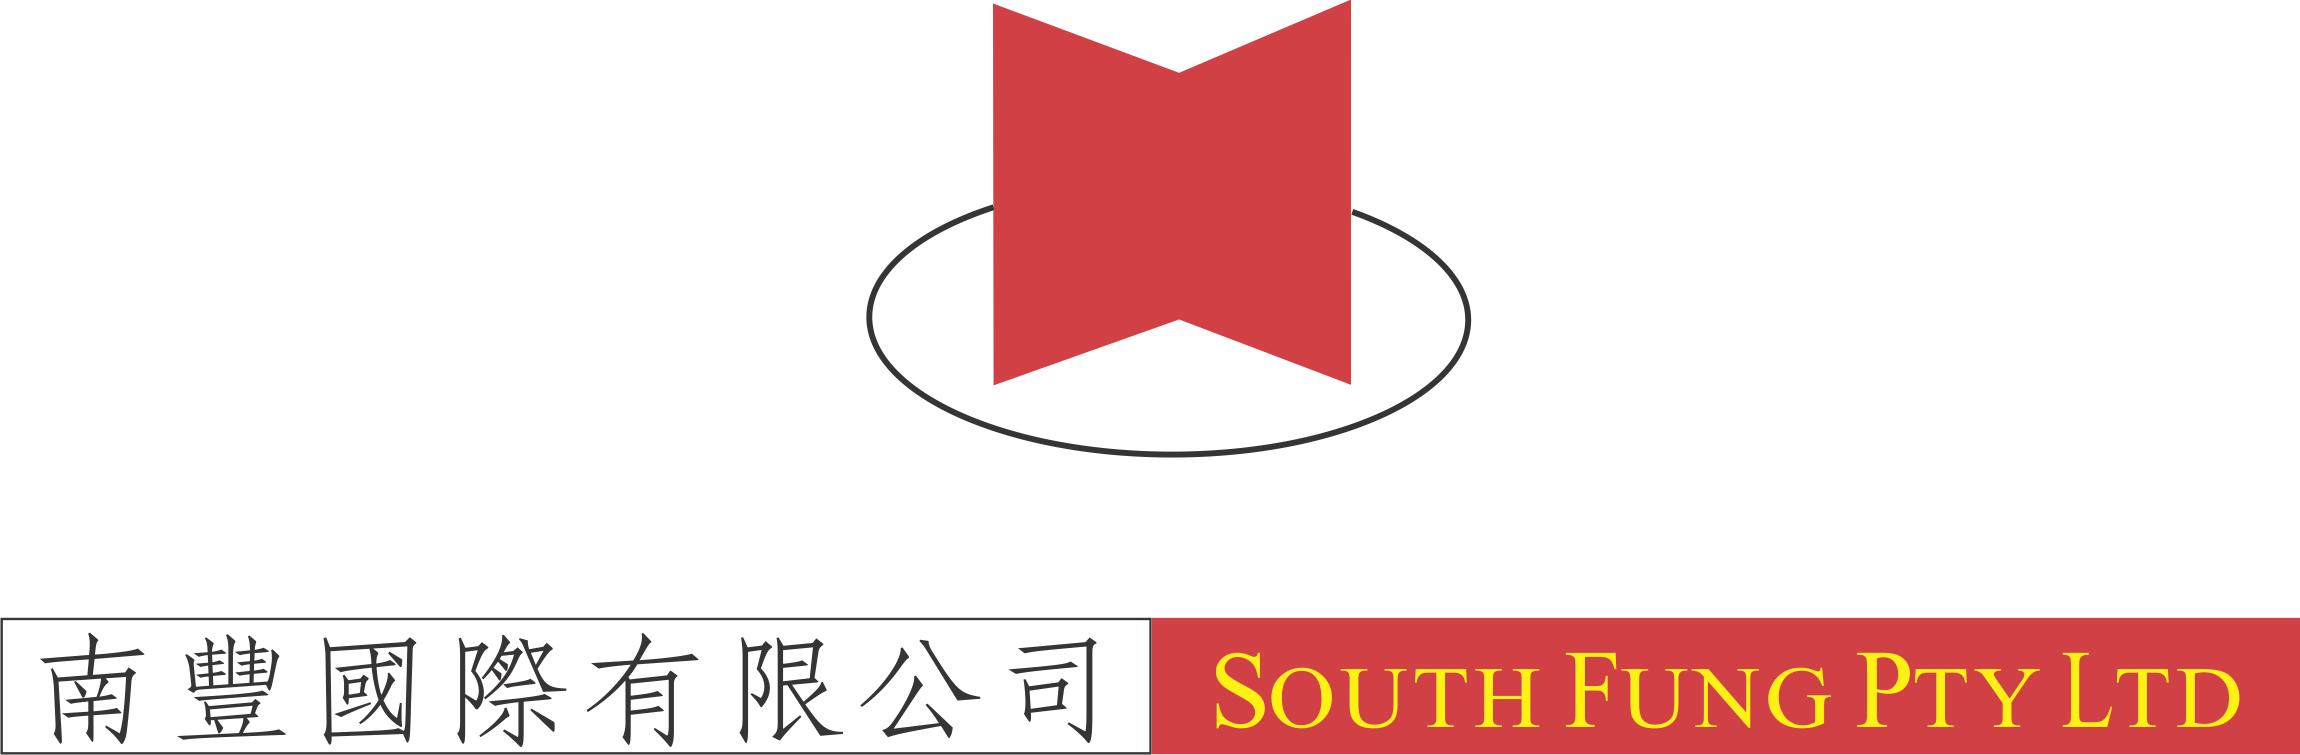 38.41 South Fung Pty Ltd